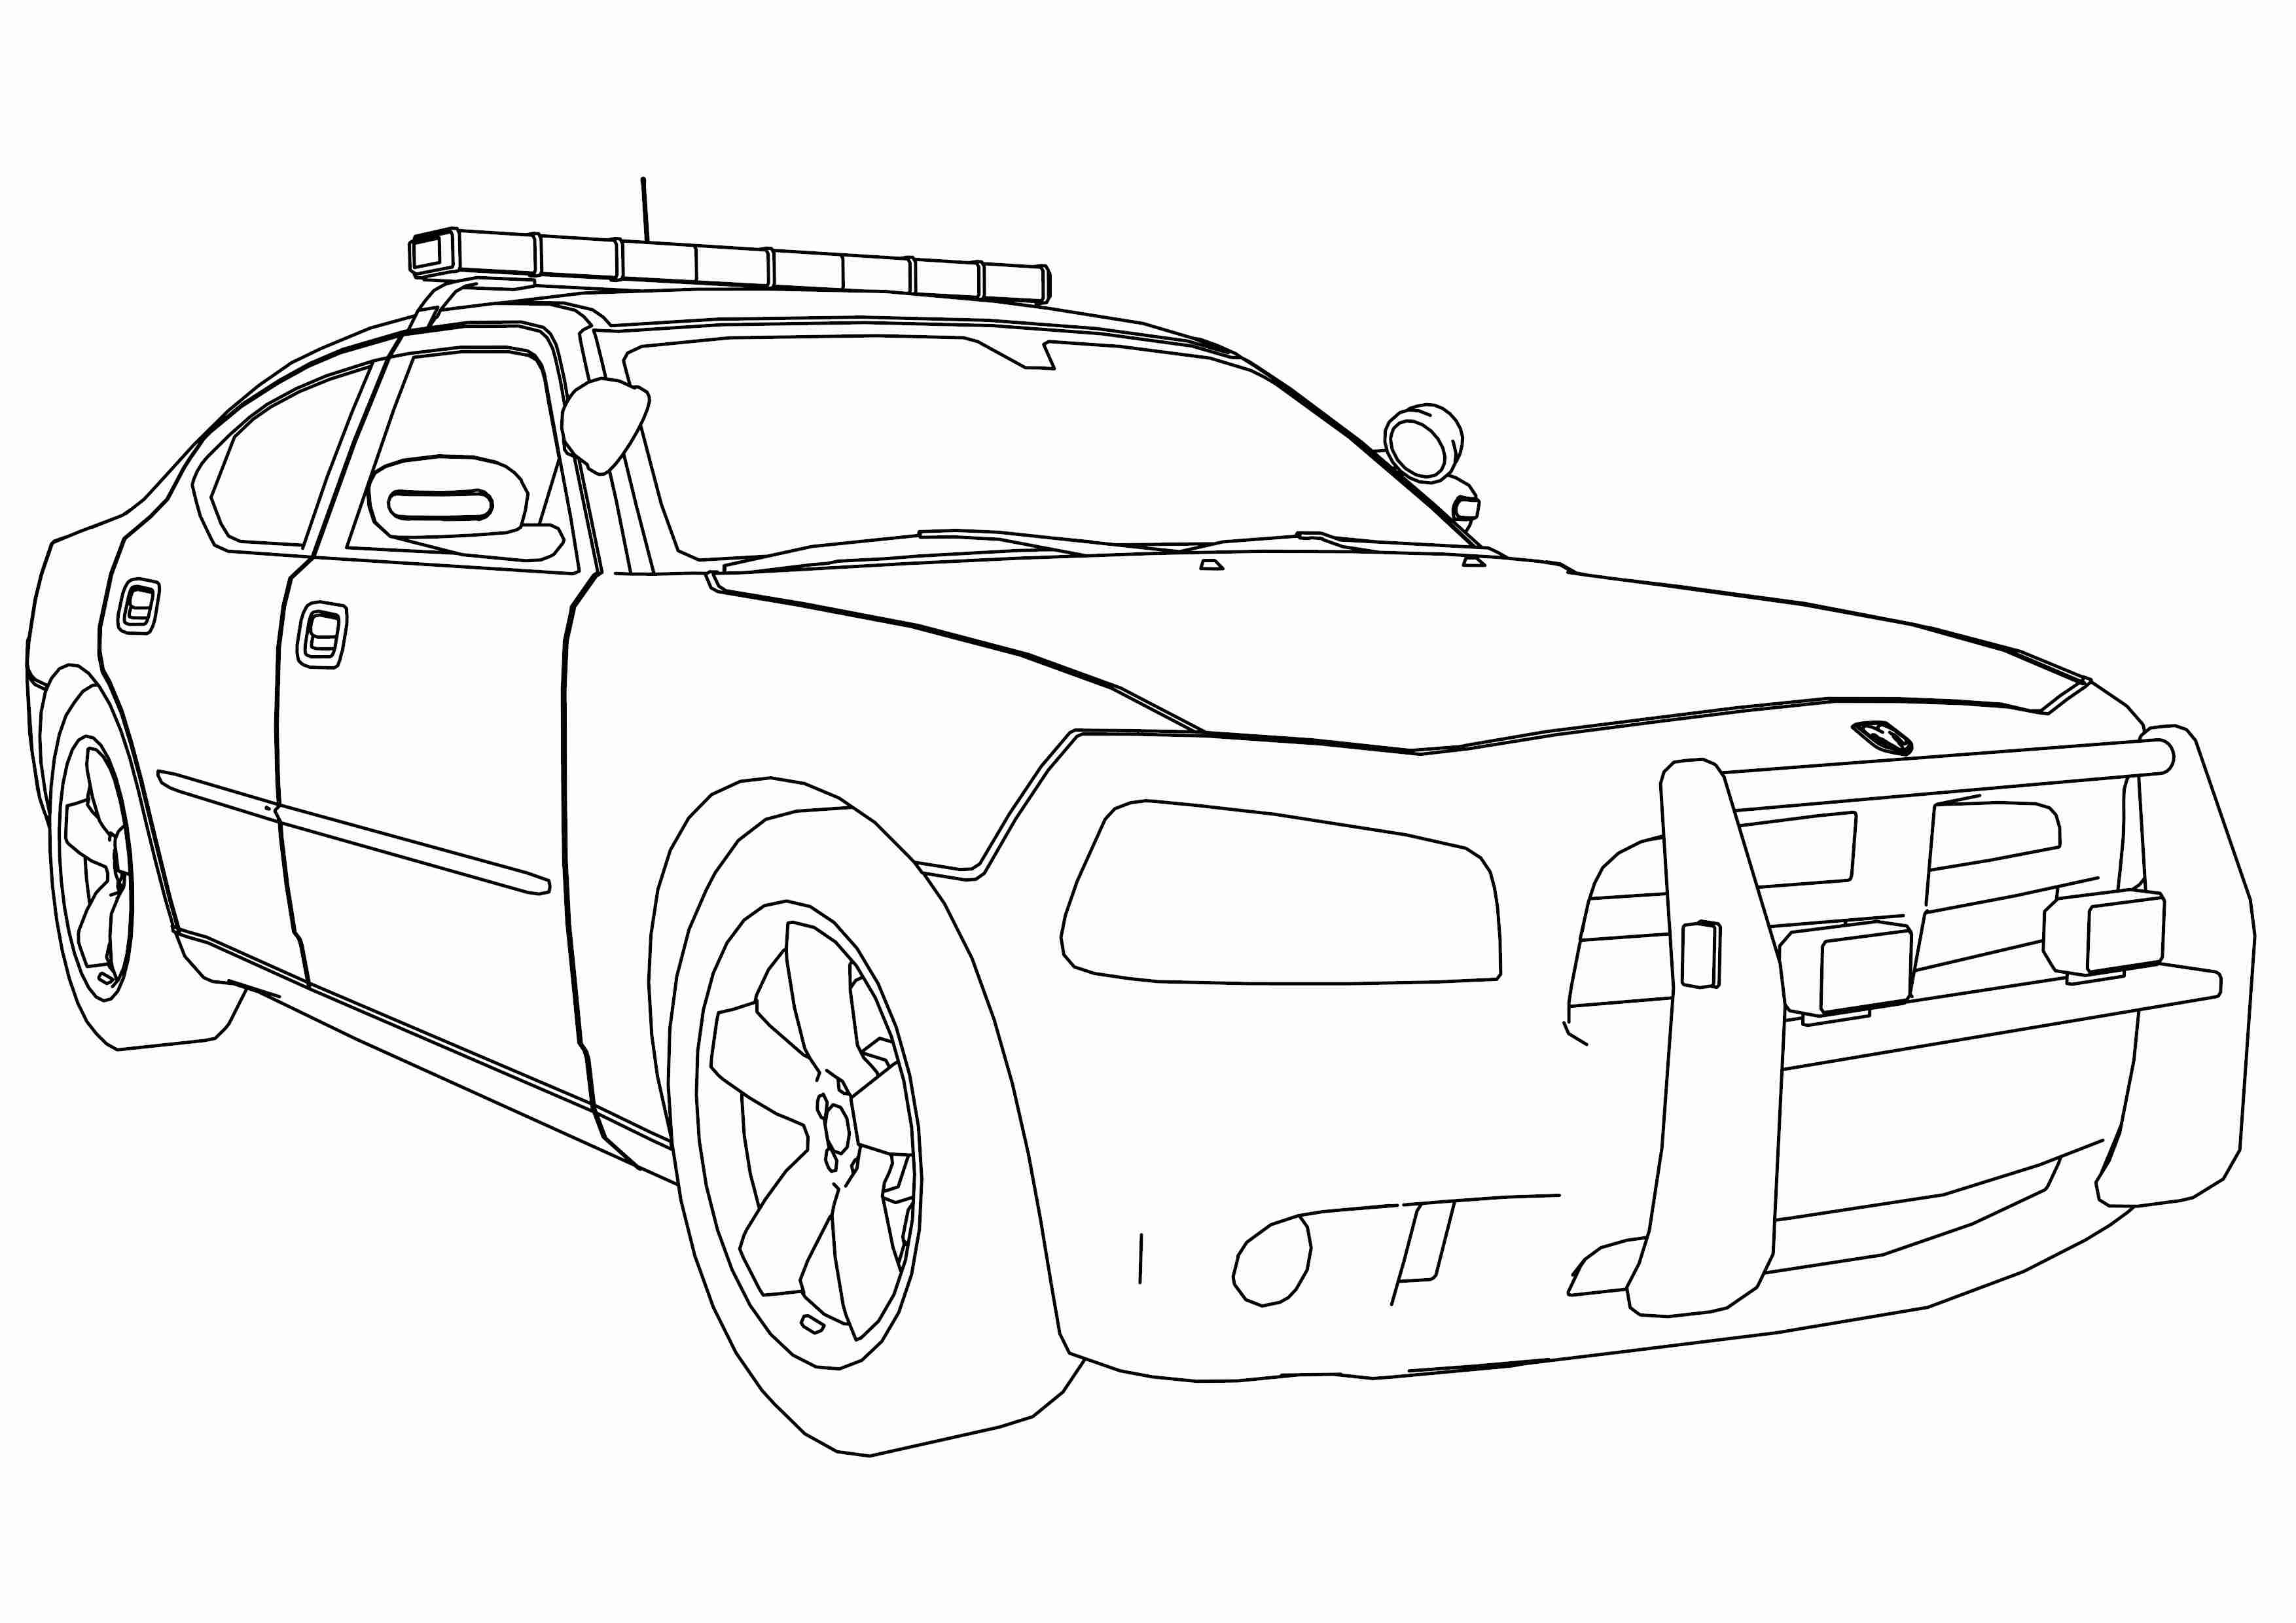 coloring pages ferrari cars ferrari coloring pages free printable ferrari coloring pages cars ferrari coloring pages